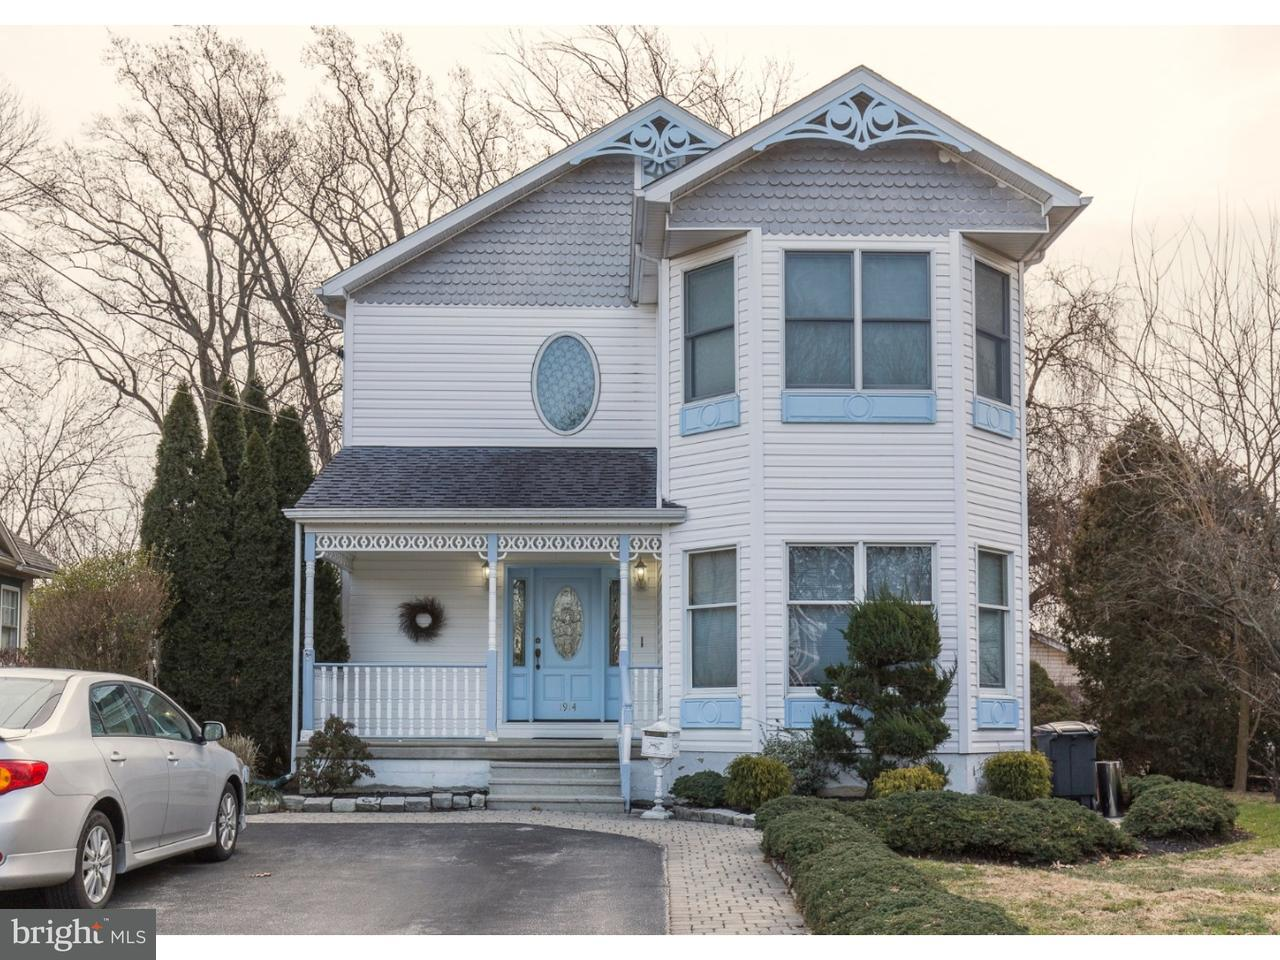 Single Family Home for Sale at 1914 PERSHING Avenue Morton, Pennsylvania 19070 United States